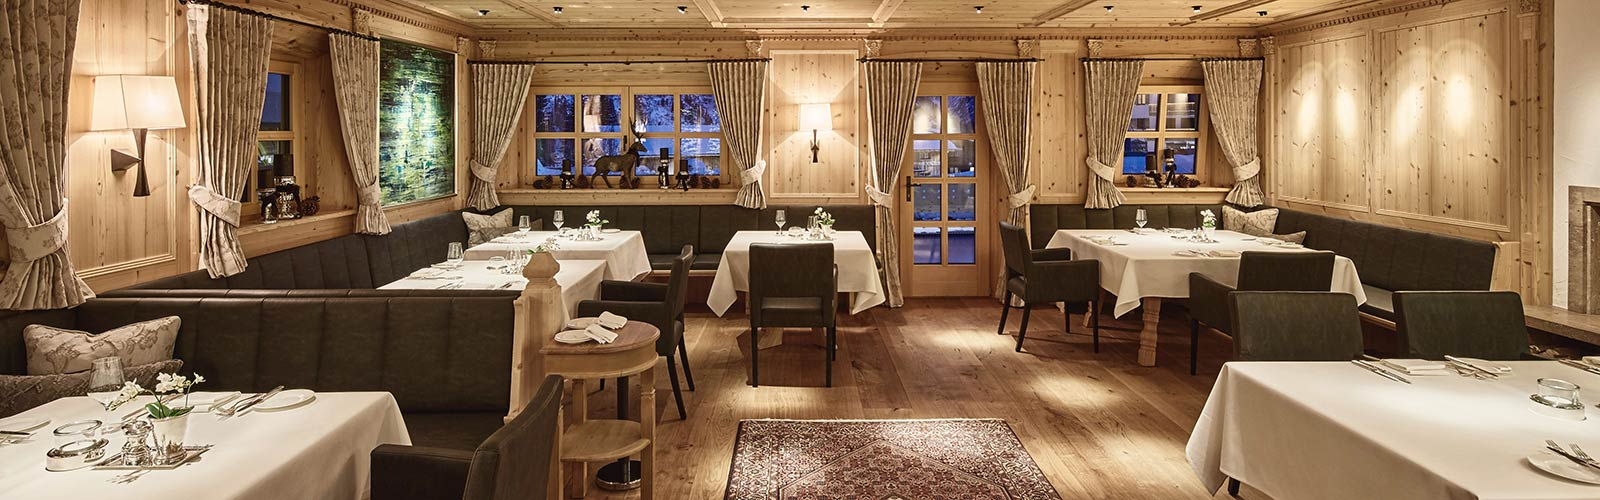 "Restaurant ""Picea"" in Lech am Arlberg"